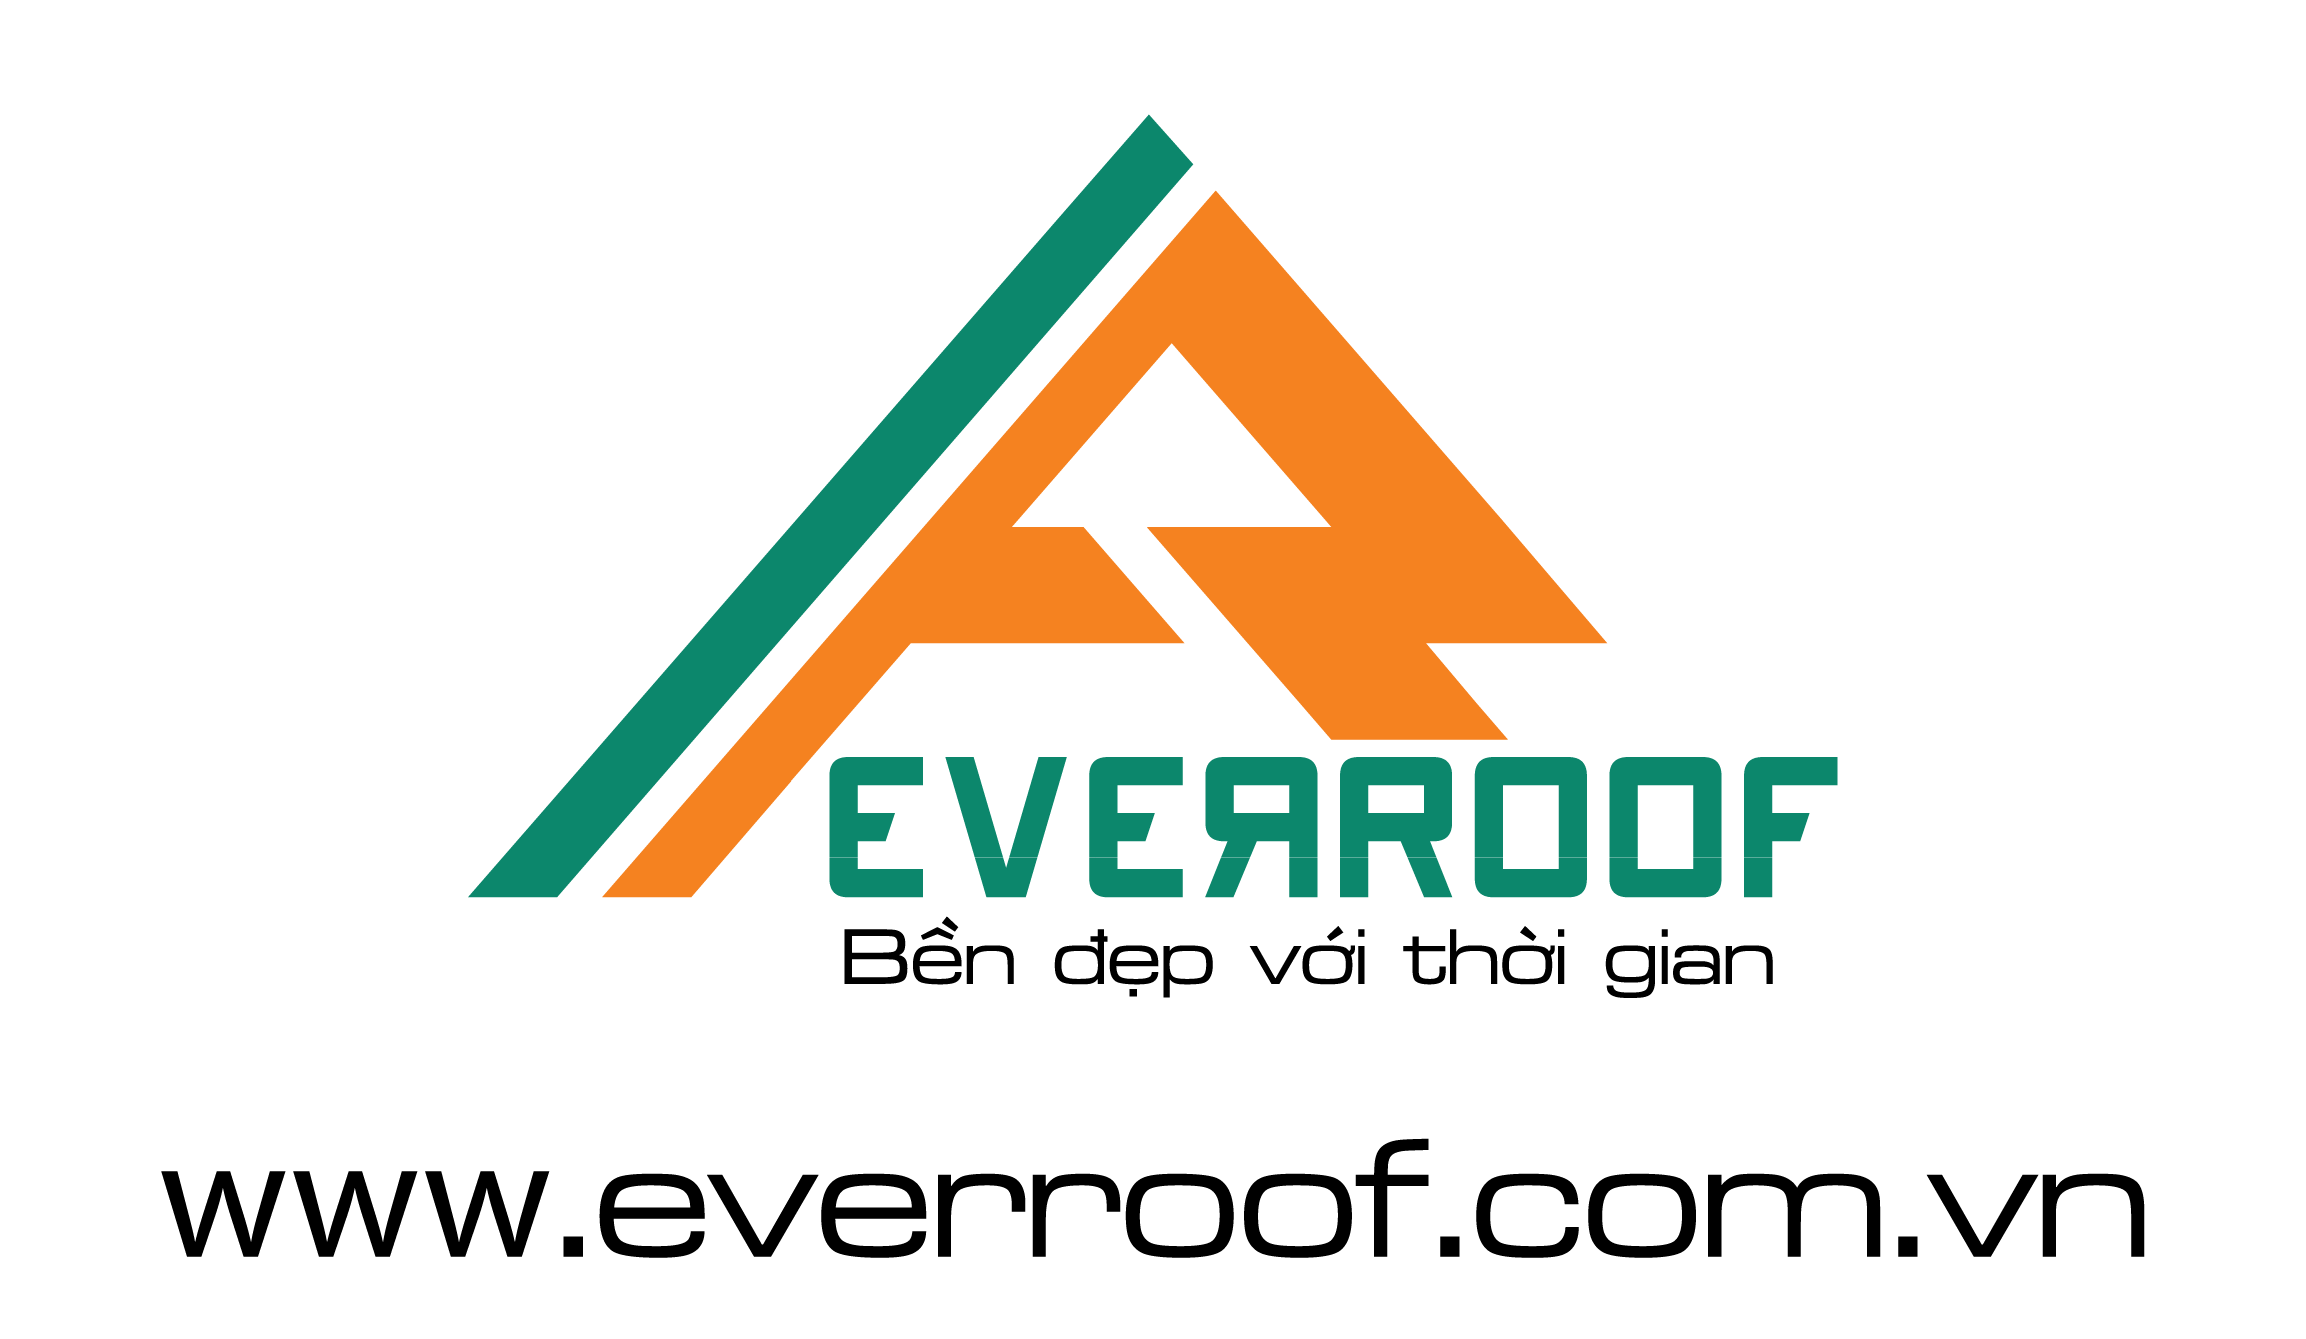 Everroof